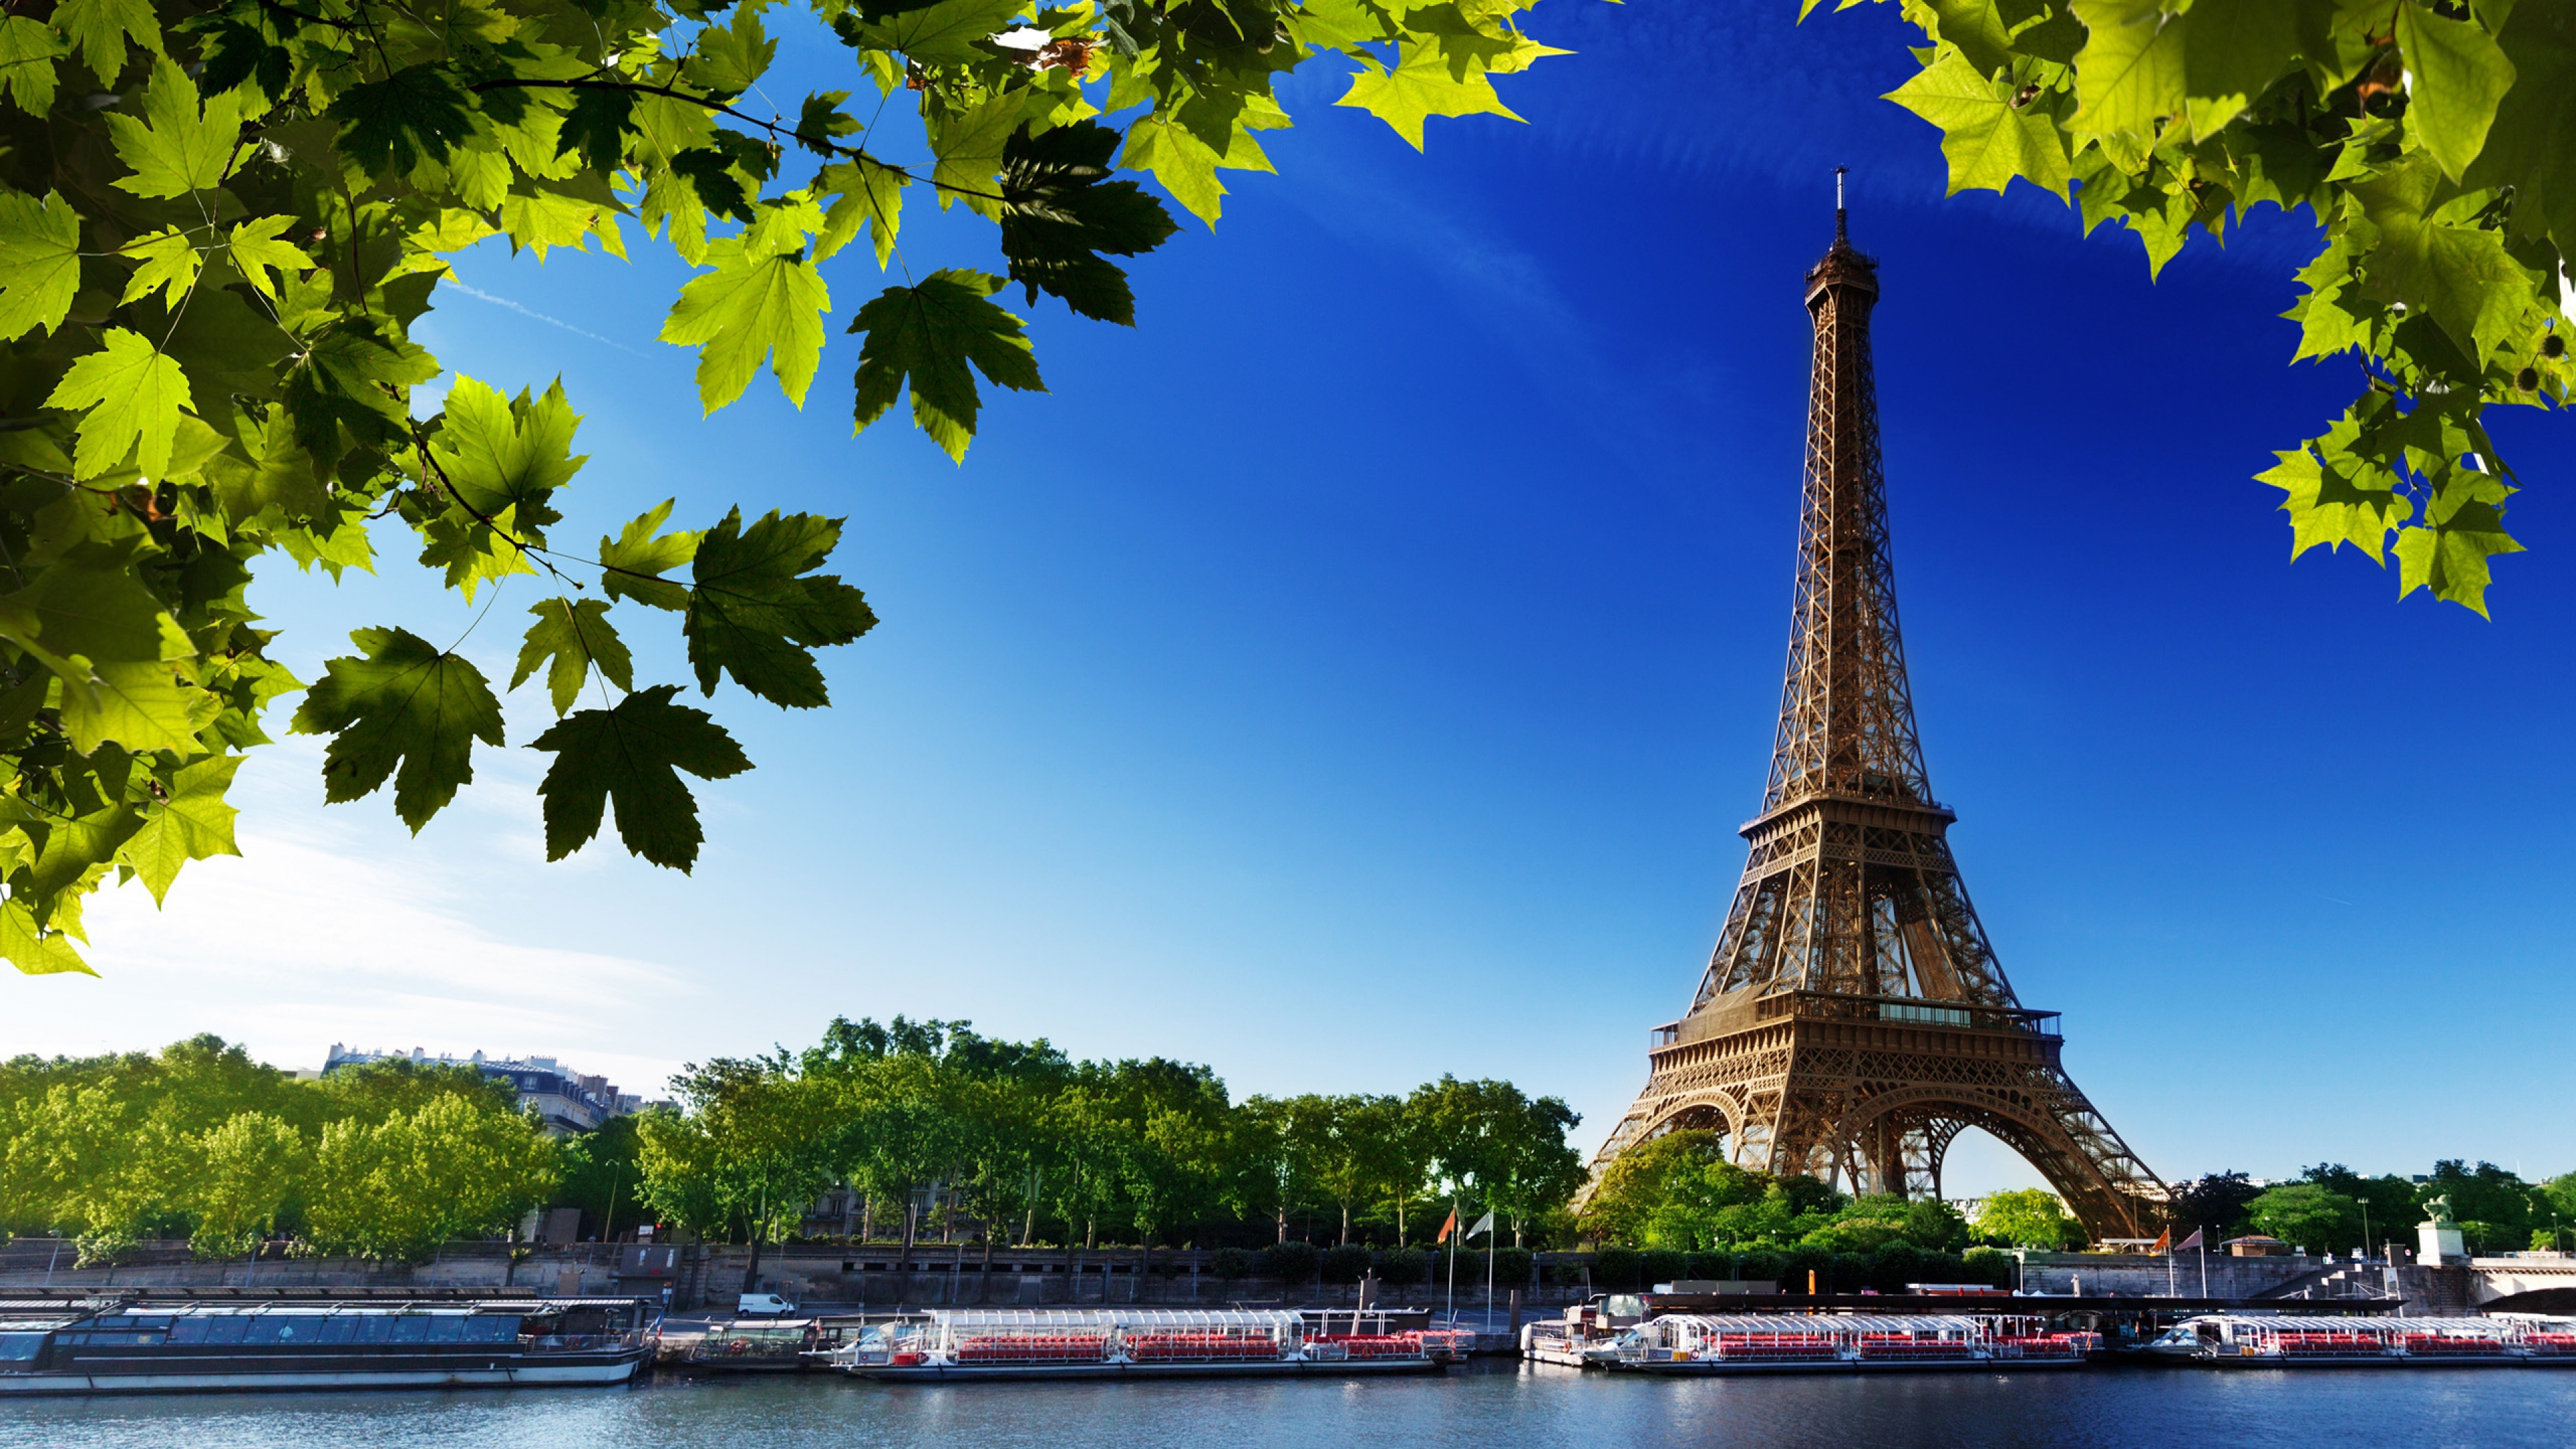 Eiffel Tower Paris 4k Hd World 4k Wallpapers Images Backgrounds